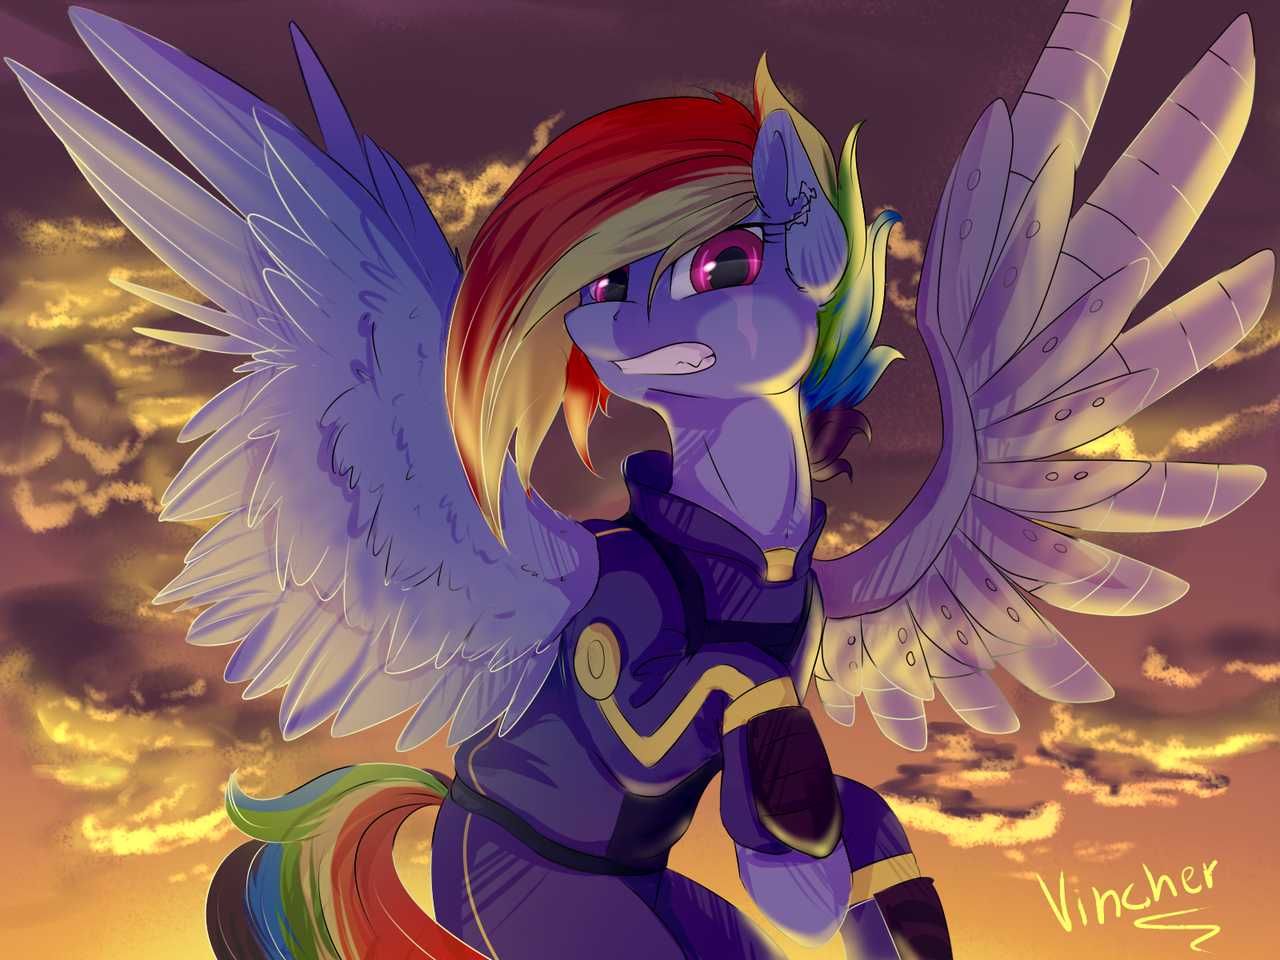 Rainbow Dash by Vincher on DeviantArt: https://vincher.deviantart.com/art/Rainbow-Dash-586241541